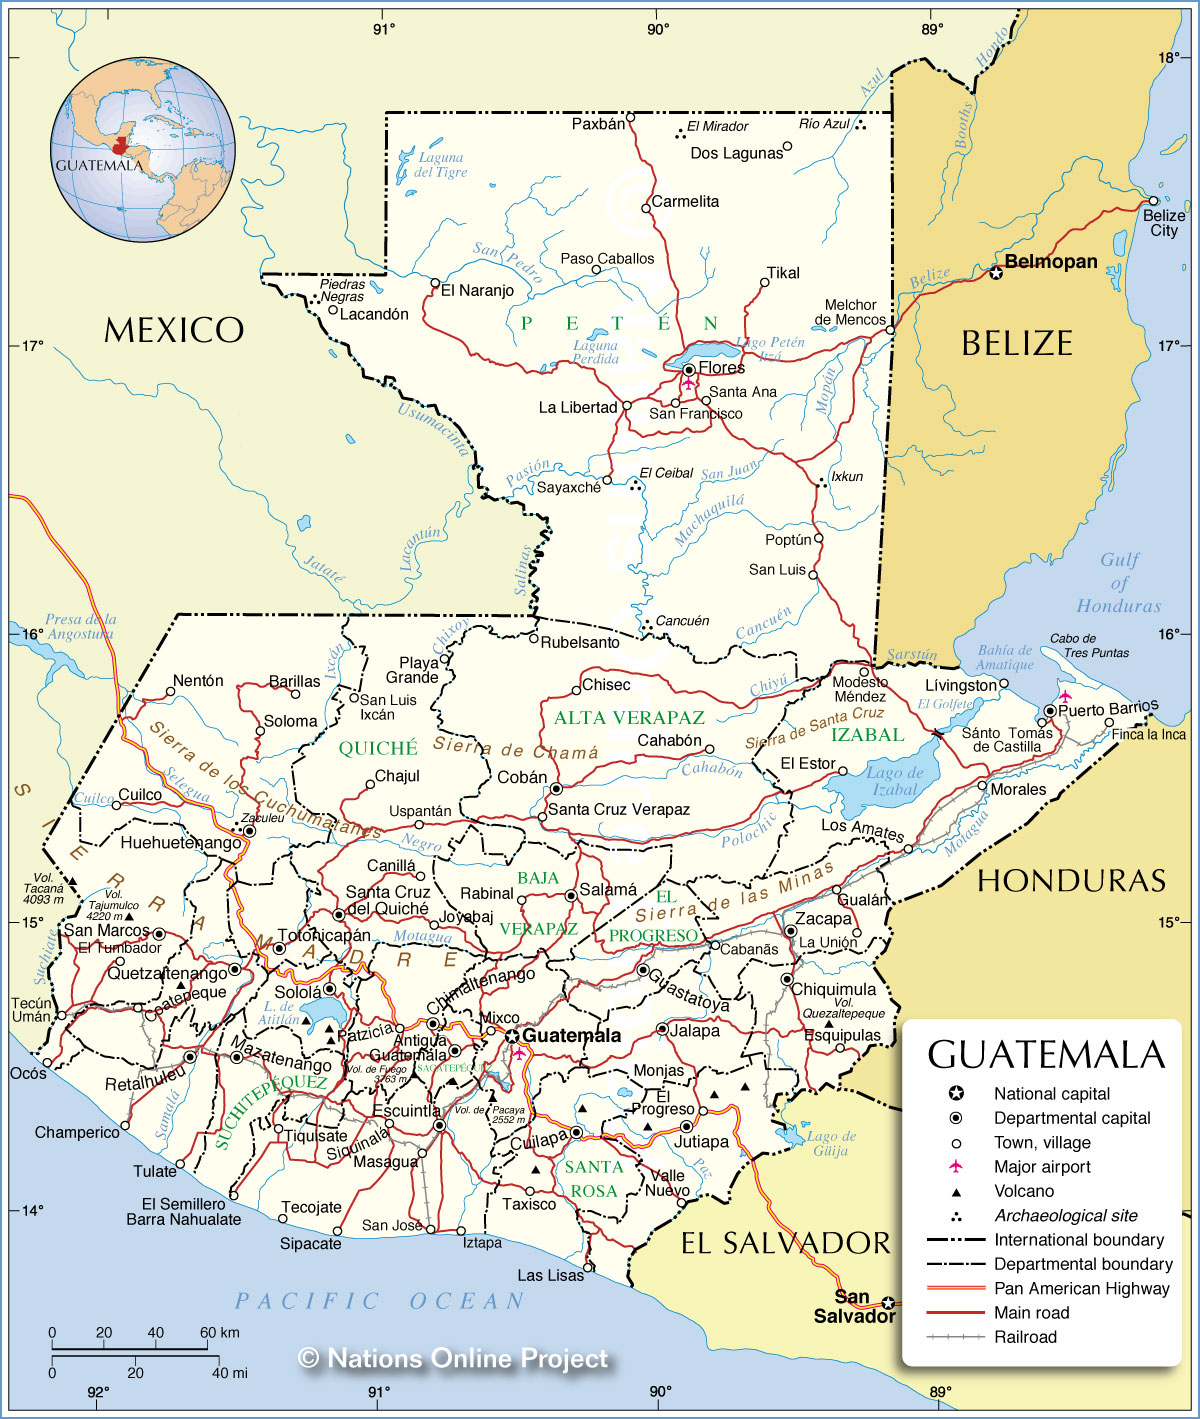 Administrative Map Of Guatemala Nations Online Project - Departments map of guatemala